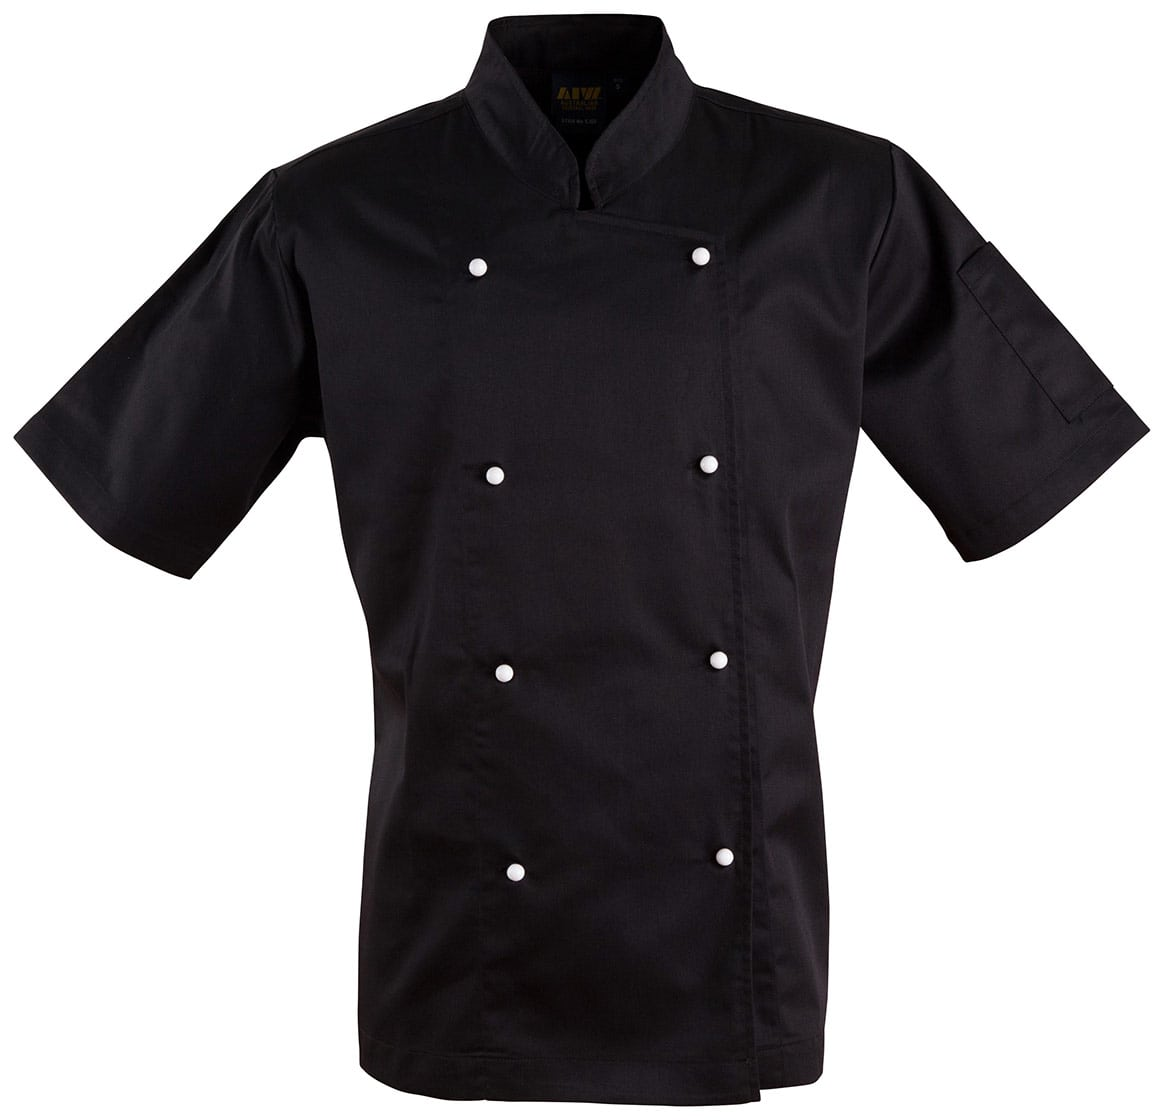 CJ02 Black Chef's Short Sleeve Jacket